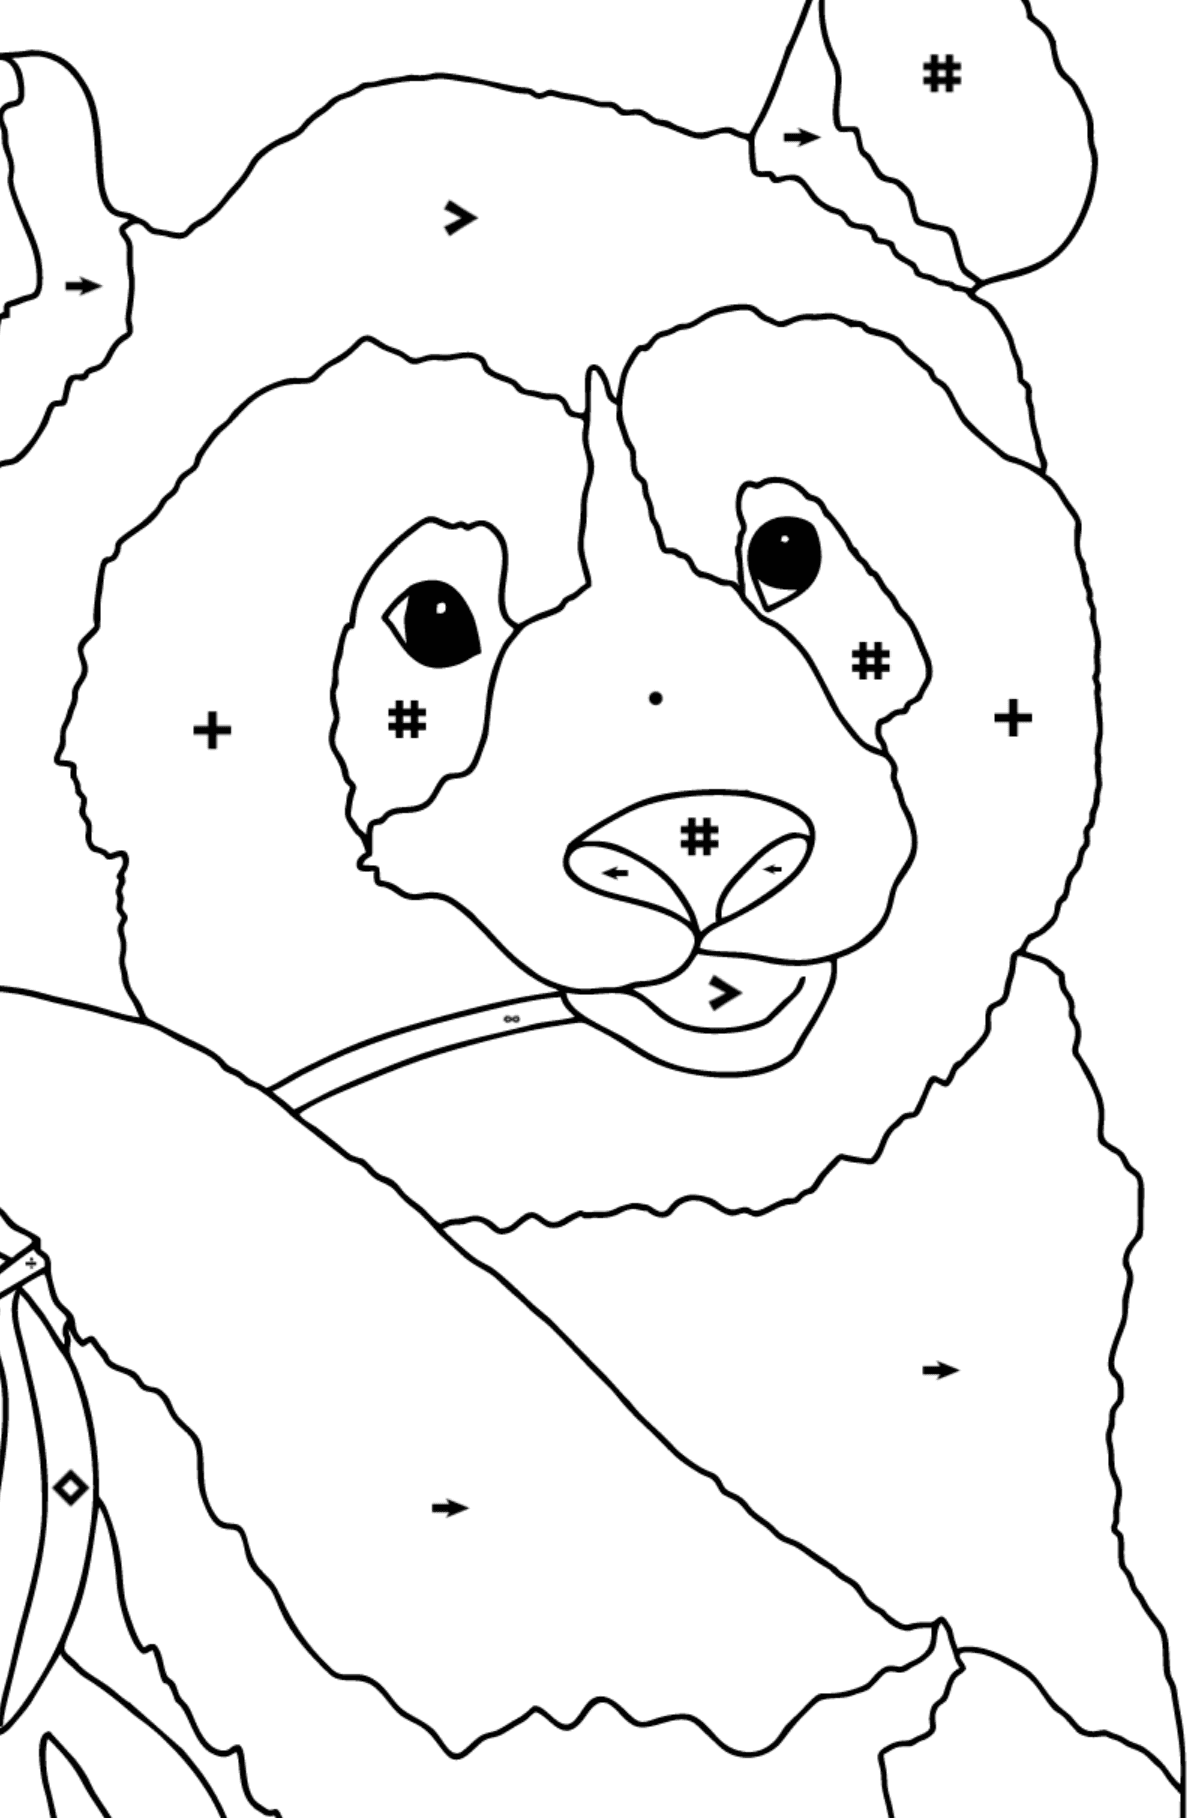 Coloring Page - A Panda is Eating Bamboo Stems and Leaves - Coloring by Symbols for Children